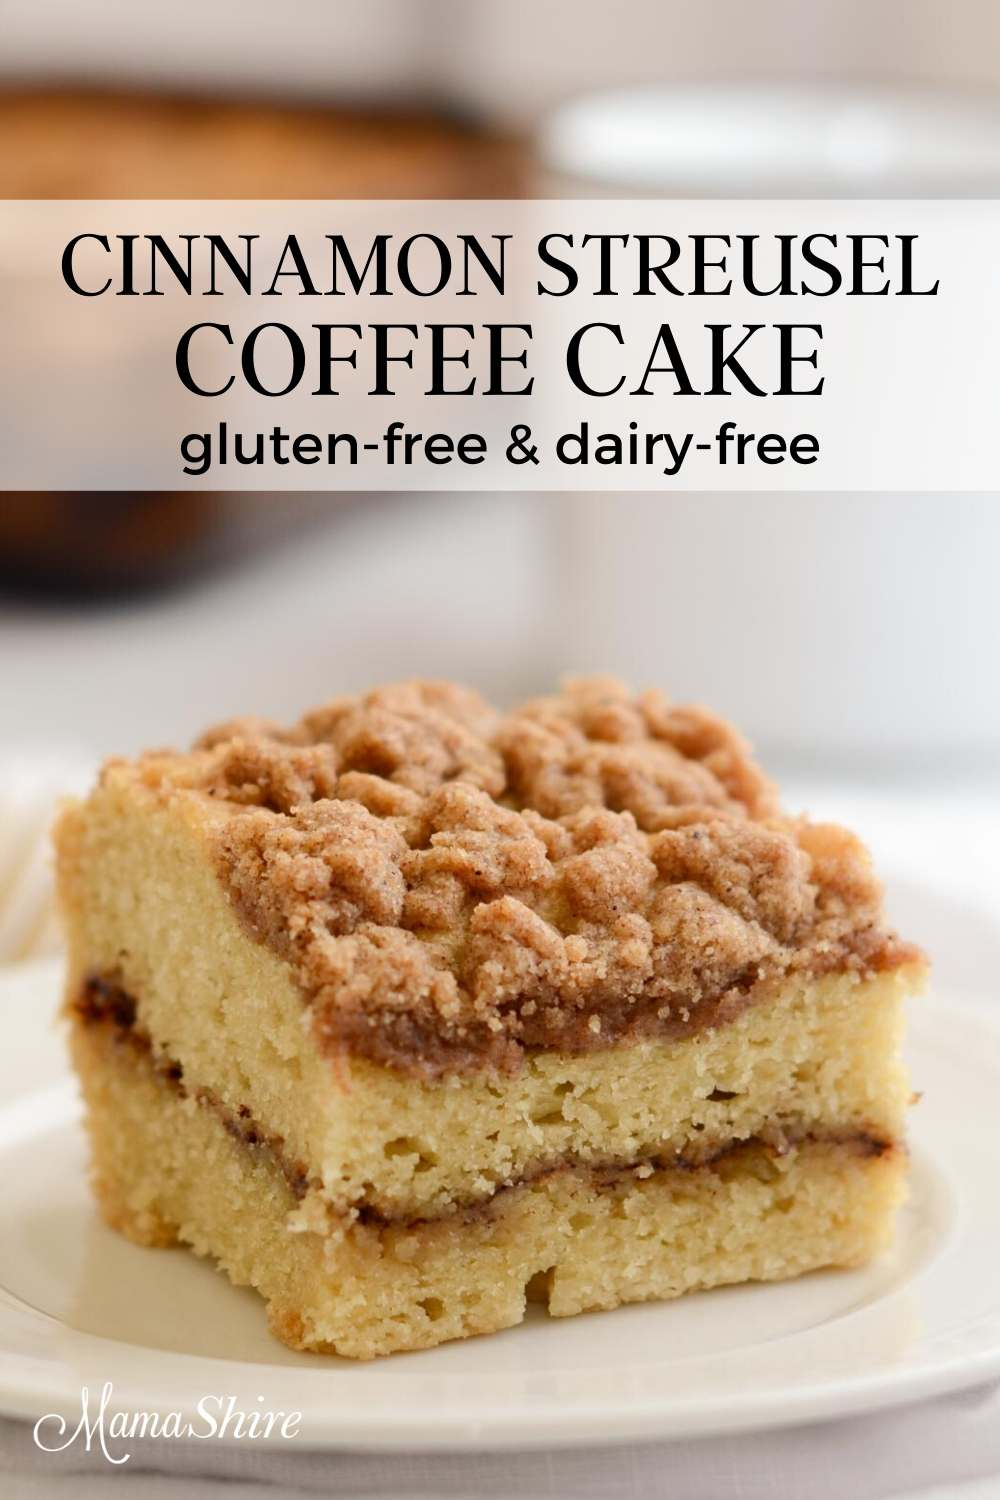 Gluten-free coffee cake with a cinnamon streusel topping and cinnamon filling.